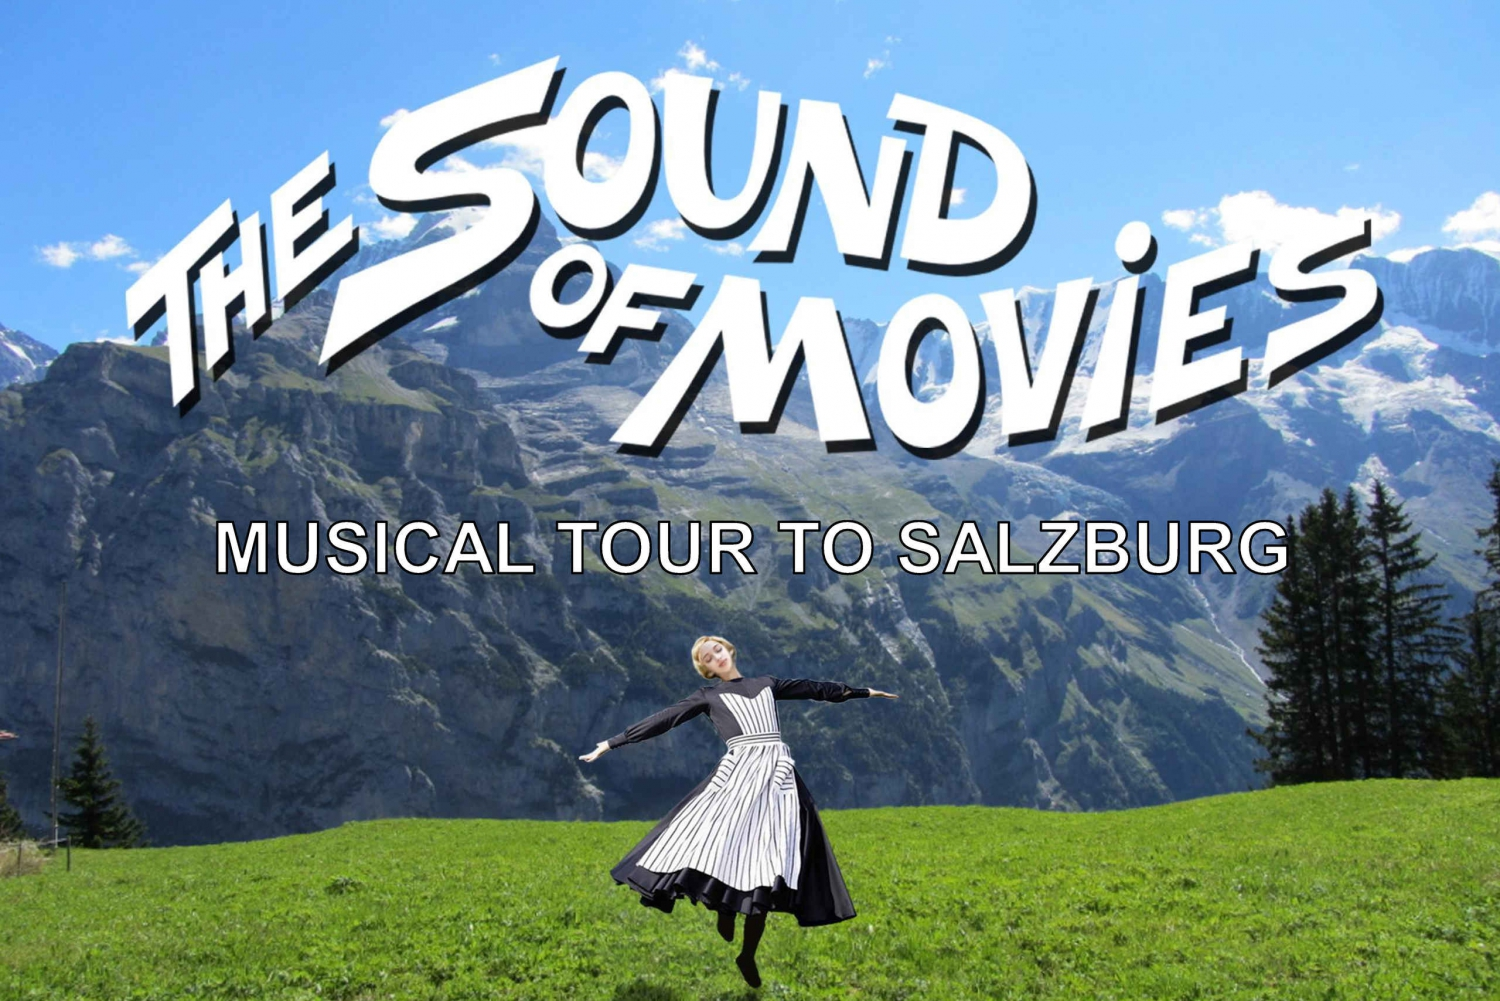 From Sound of Movies Musical Tour to Salzburg